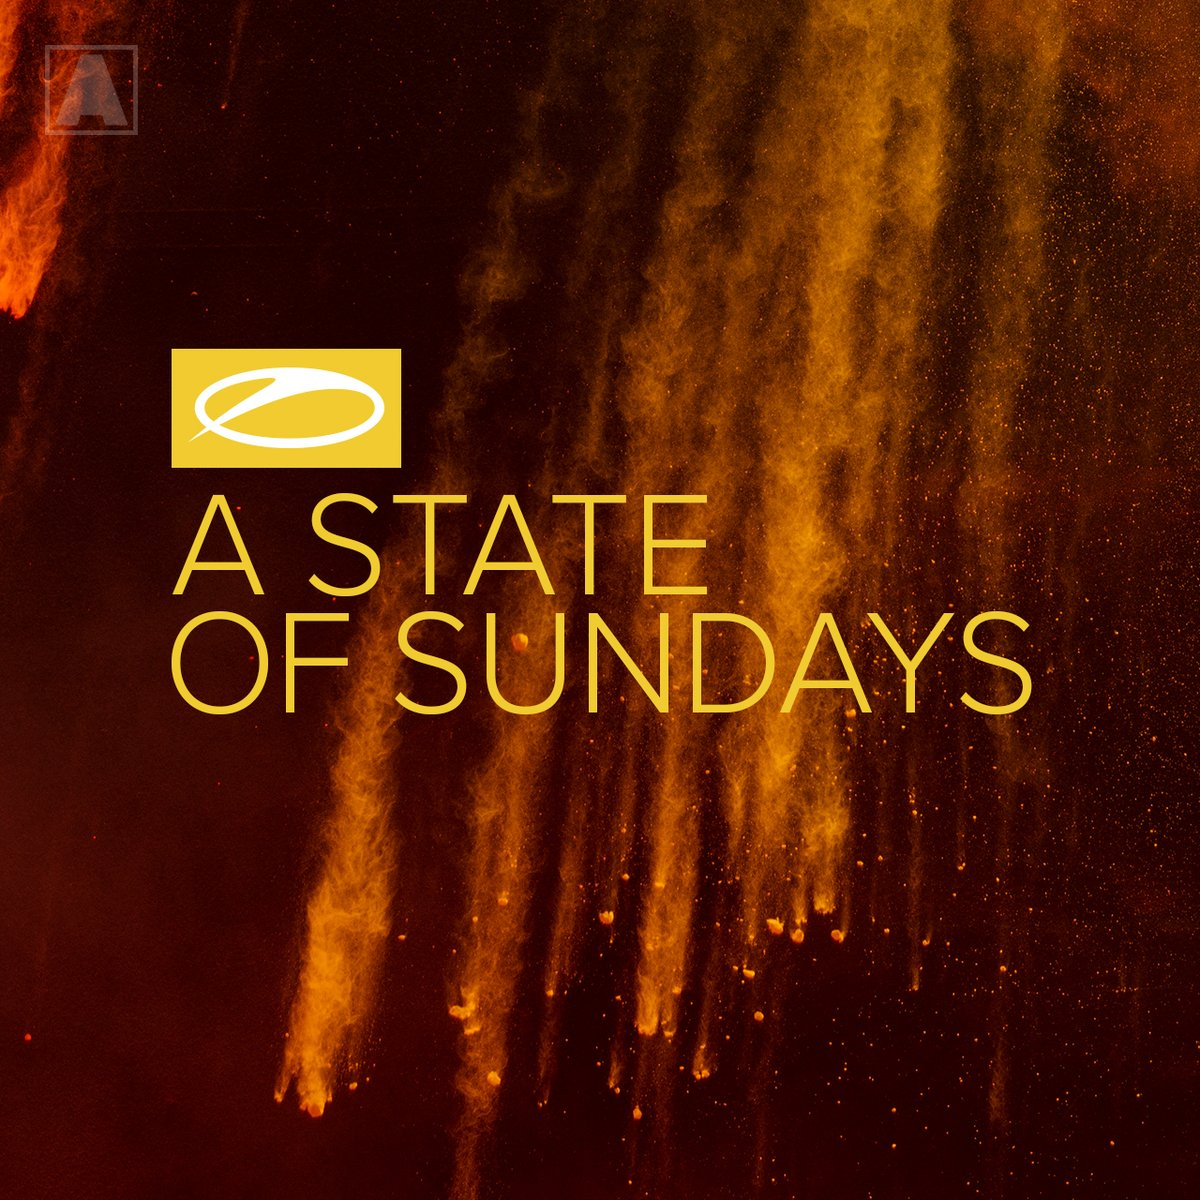 What are you waiting for? Trance up your Sunday with our epic #ASOS playlist: https://t.co/6NcvAaHobt #Trance #ASOT https://t.co/N4gZSA84j3